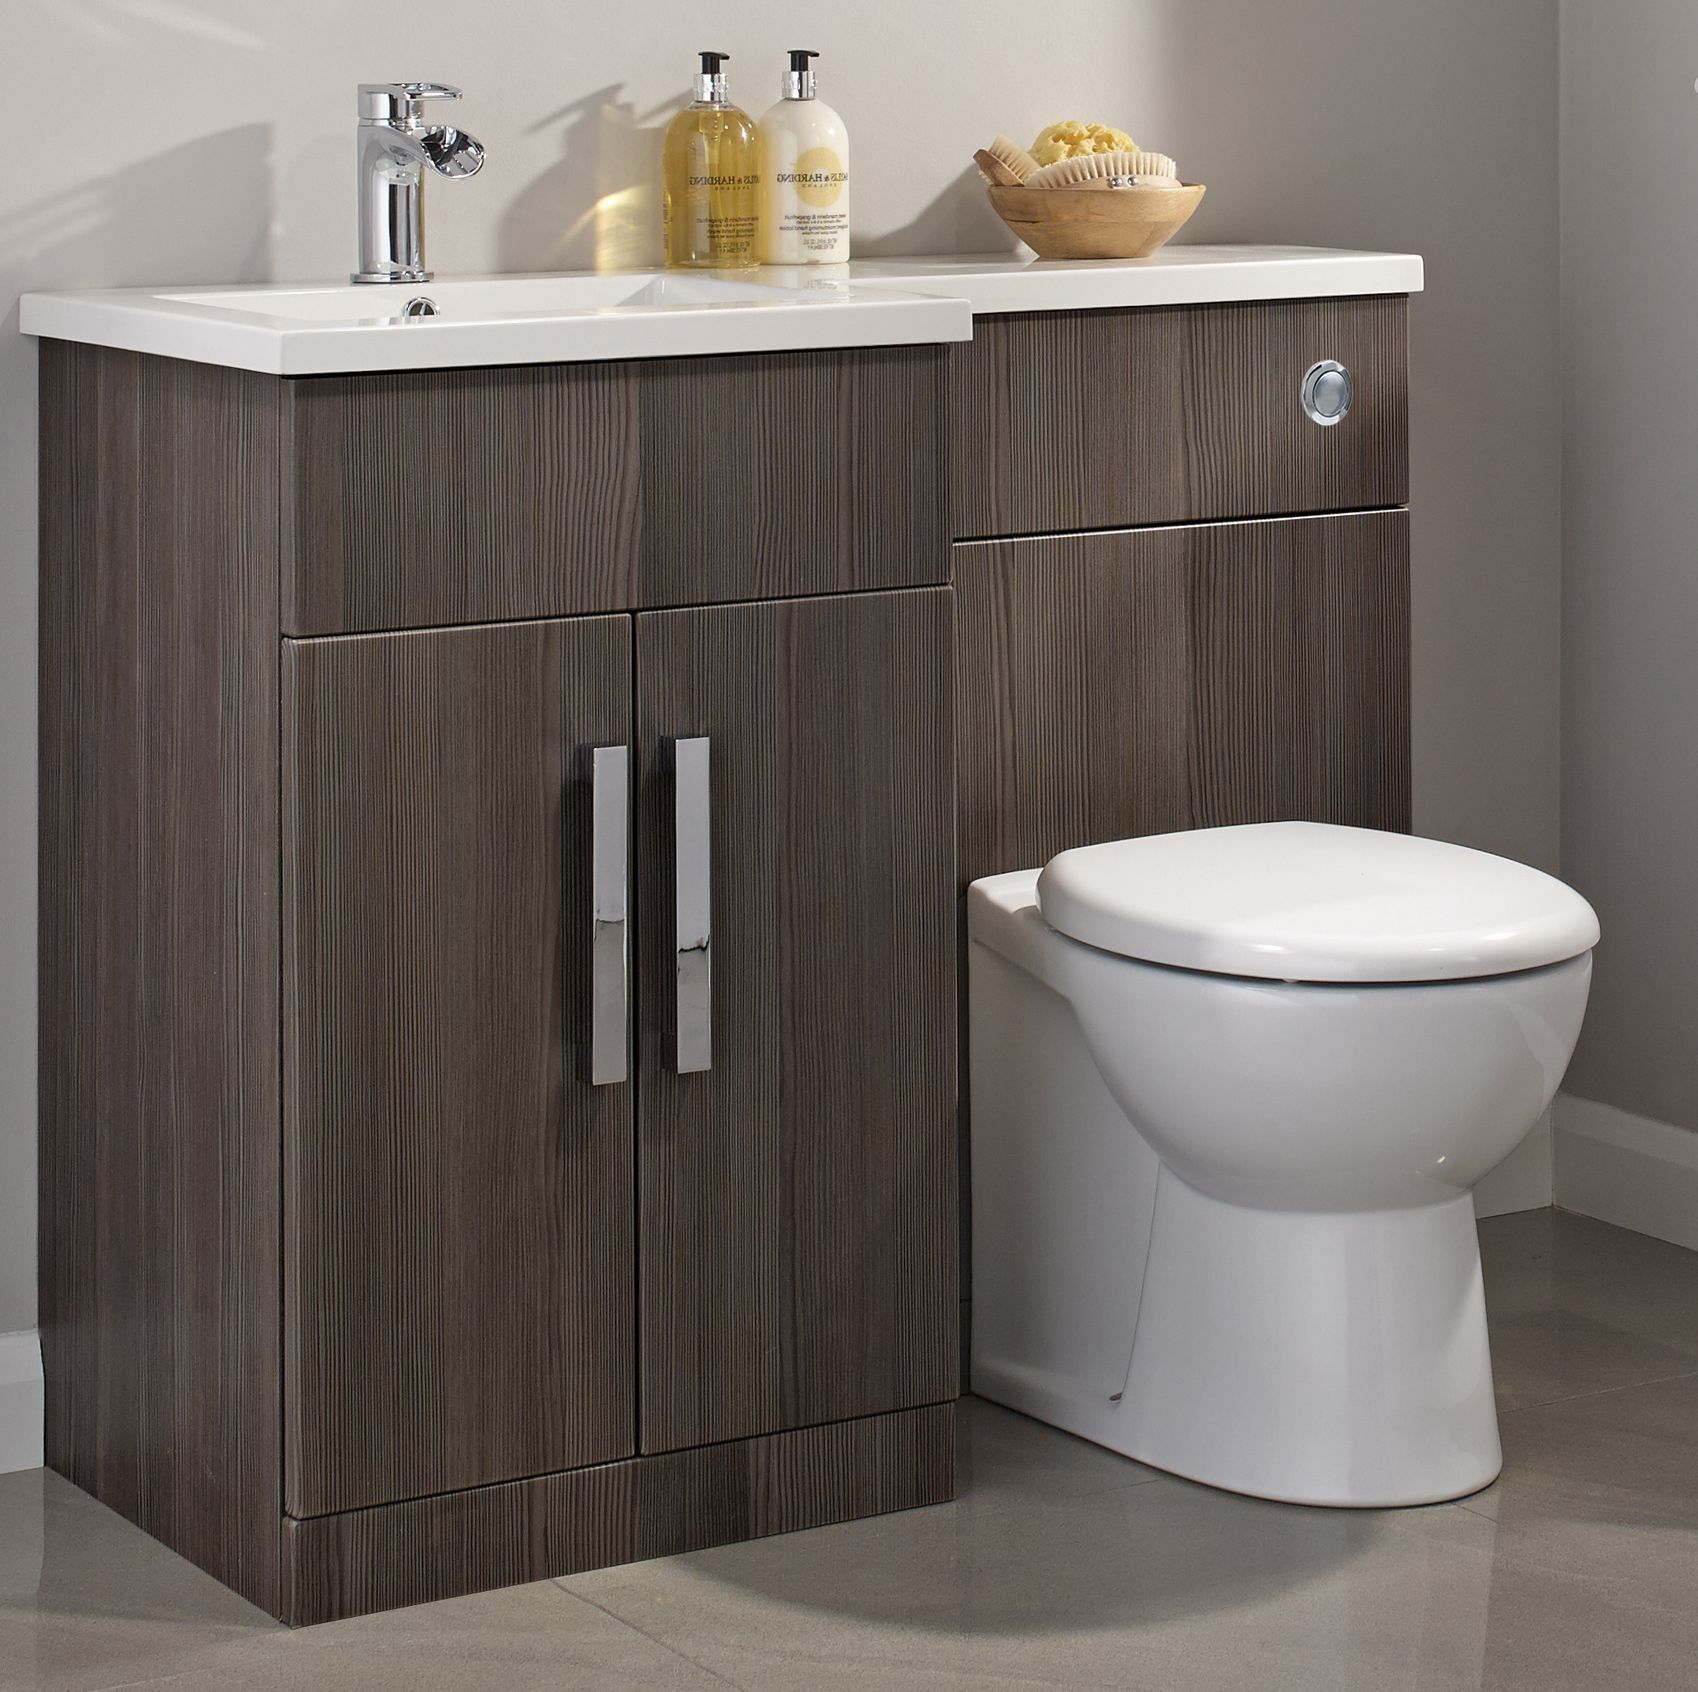 Cooke & Lewis Ardesio Bodega Grey LH Vanity & Toilet Pack | Departments |  DIY at B&Q.